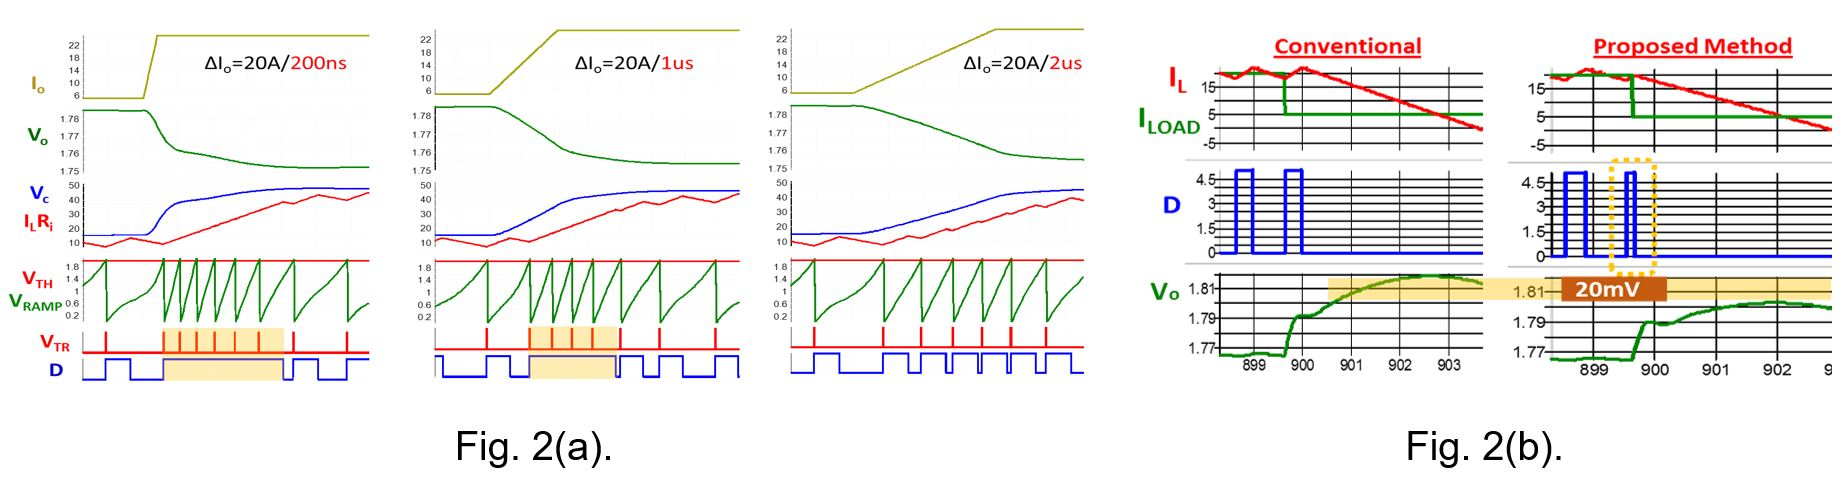 Image of IQCOT transient response at different slew rates, 20 A/200 µs, 20 A/1 µs, and (c) 20 A/2 µs. and overshoot reduction at load step-up using proposed control.